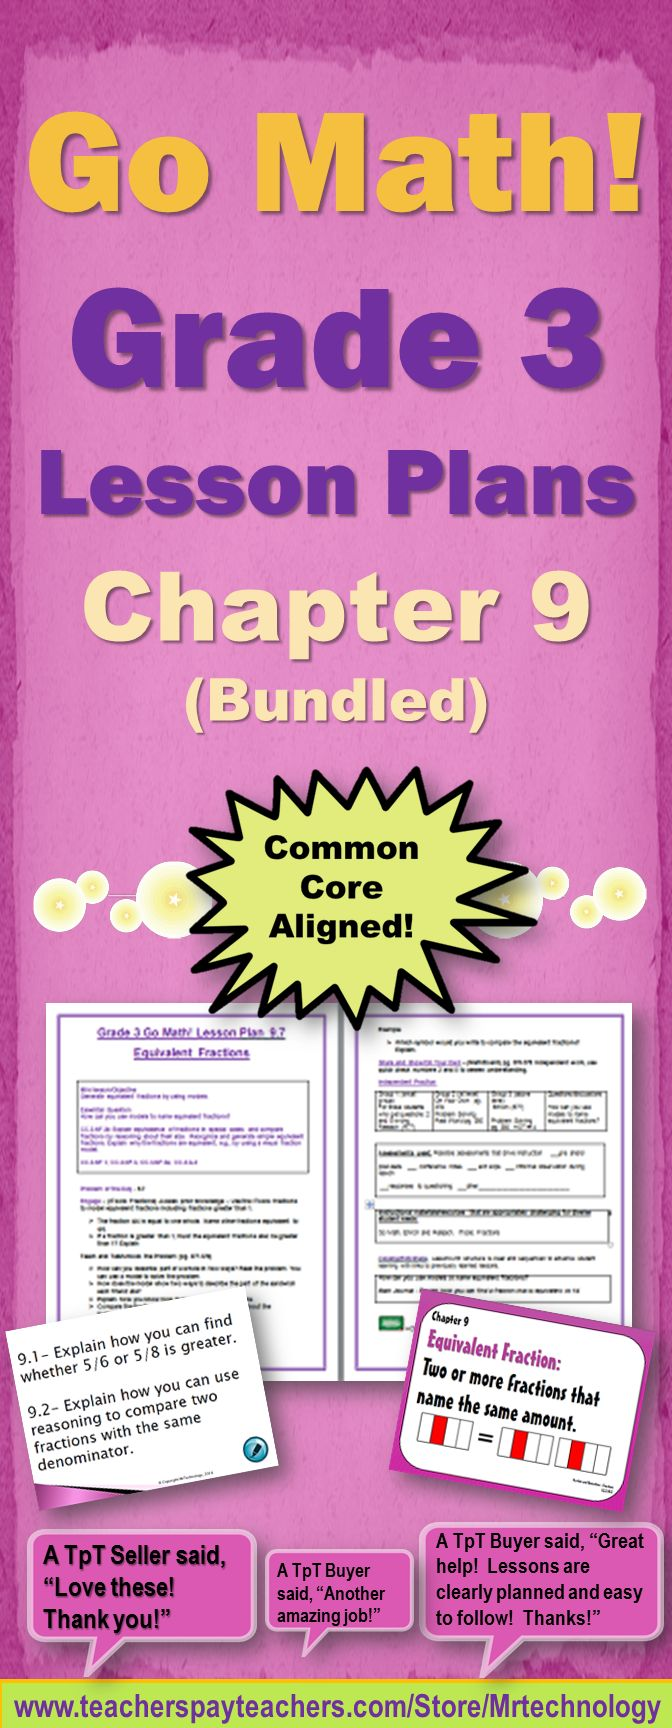 ***ENTIRE GRADE 3 - GO MATH! CHAPTER 9 BUNDLED *** Go Math! Grade 3 Chapter 9 (Lessons 9.1-9.7 with Journal Prompts & Vocabulary Posters). Lesson Topics Included in the Bundle: Problem Solving – Compare Fractions Compare Fractions with the Same Denominator Compare Fractions with the Same Numerator Compare Fractions Compare and Order Fractions Model Equivalent Fractions Equivalent Fractions Math Journal Prompts Entire Chapter 7 Vocabulary